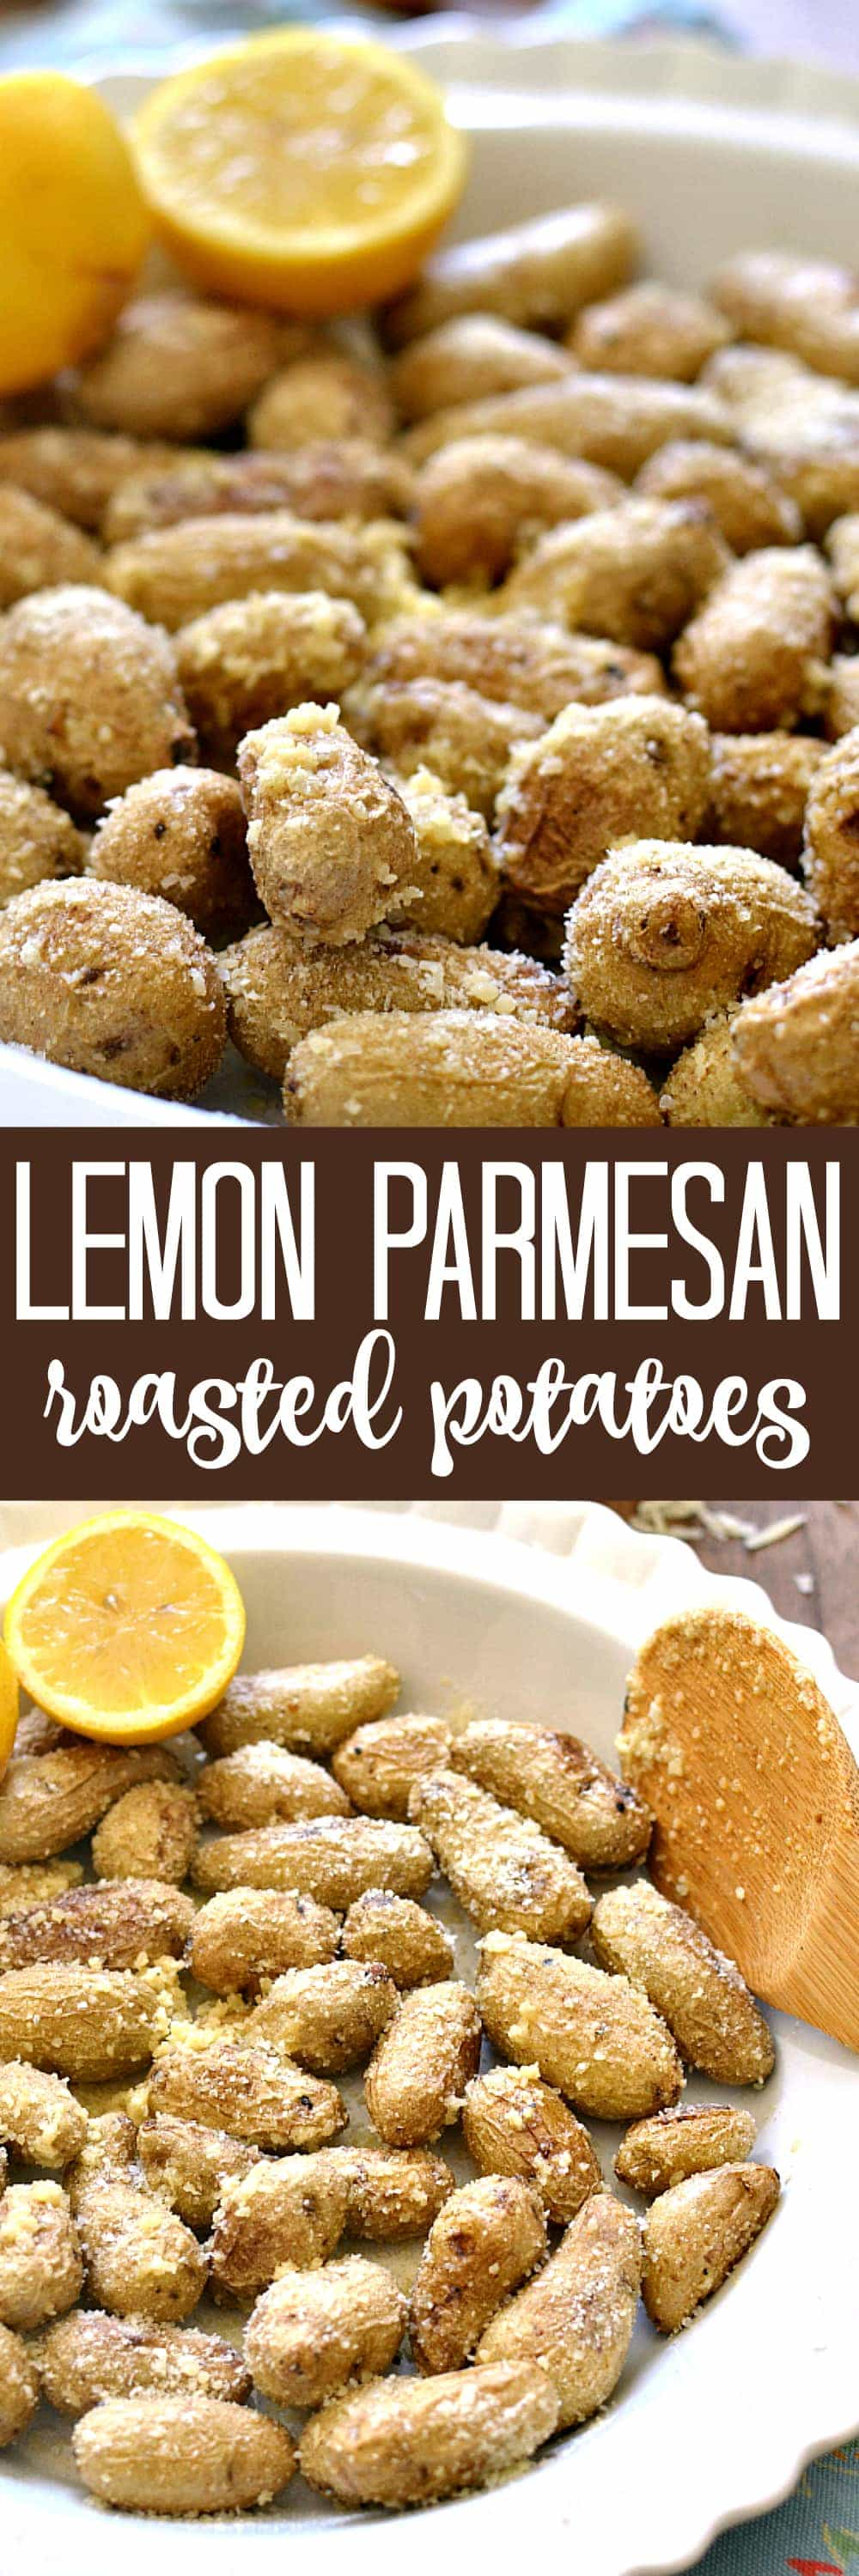 Lemon Parmesan Roasted Potatoes - a simple and delicious side dish! Perfect for spring!